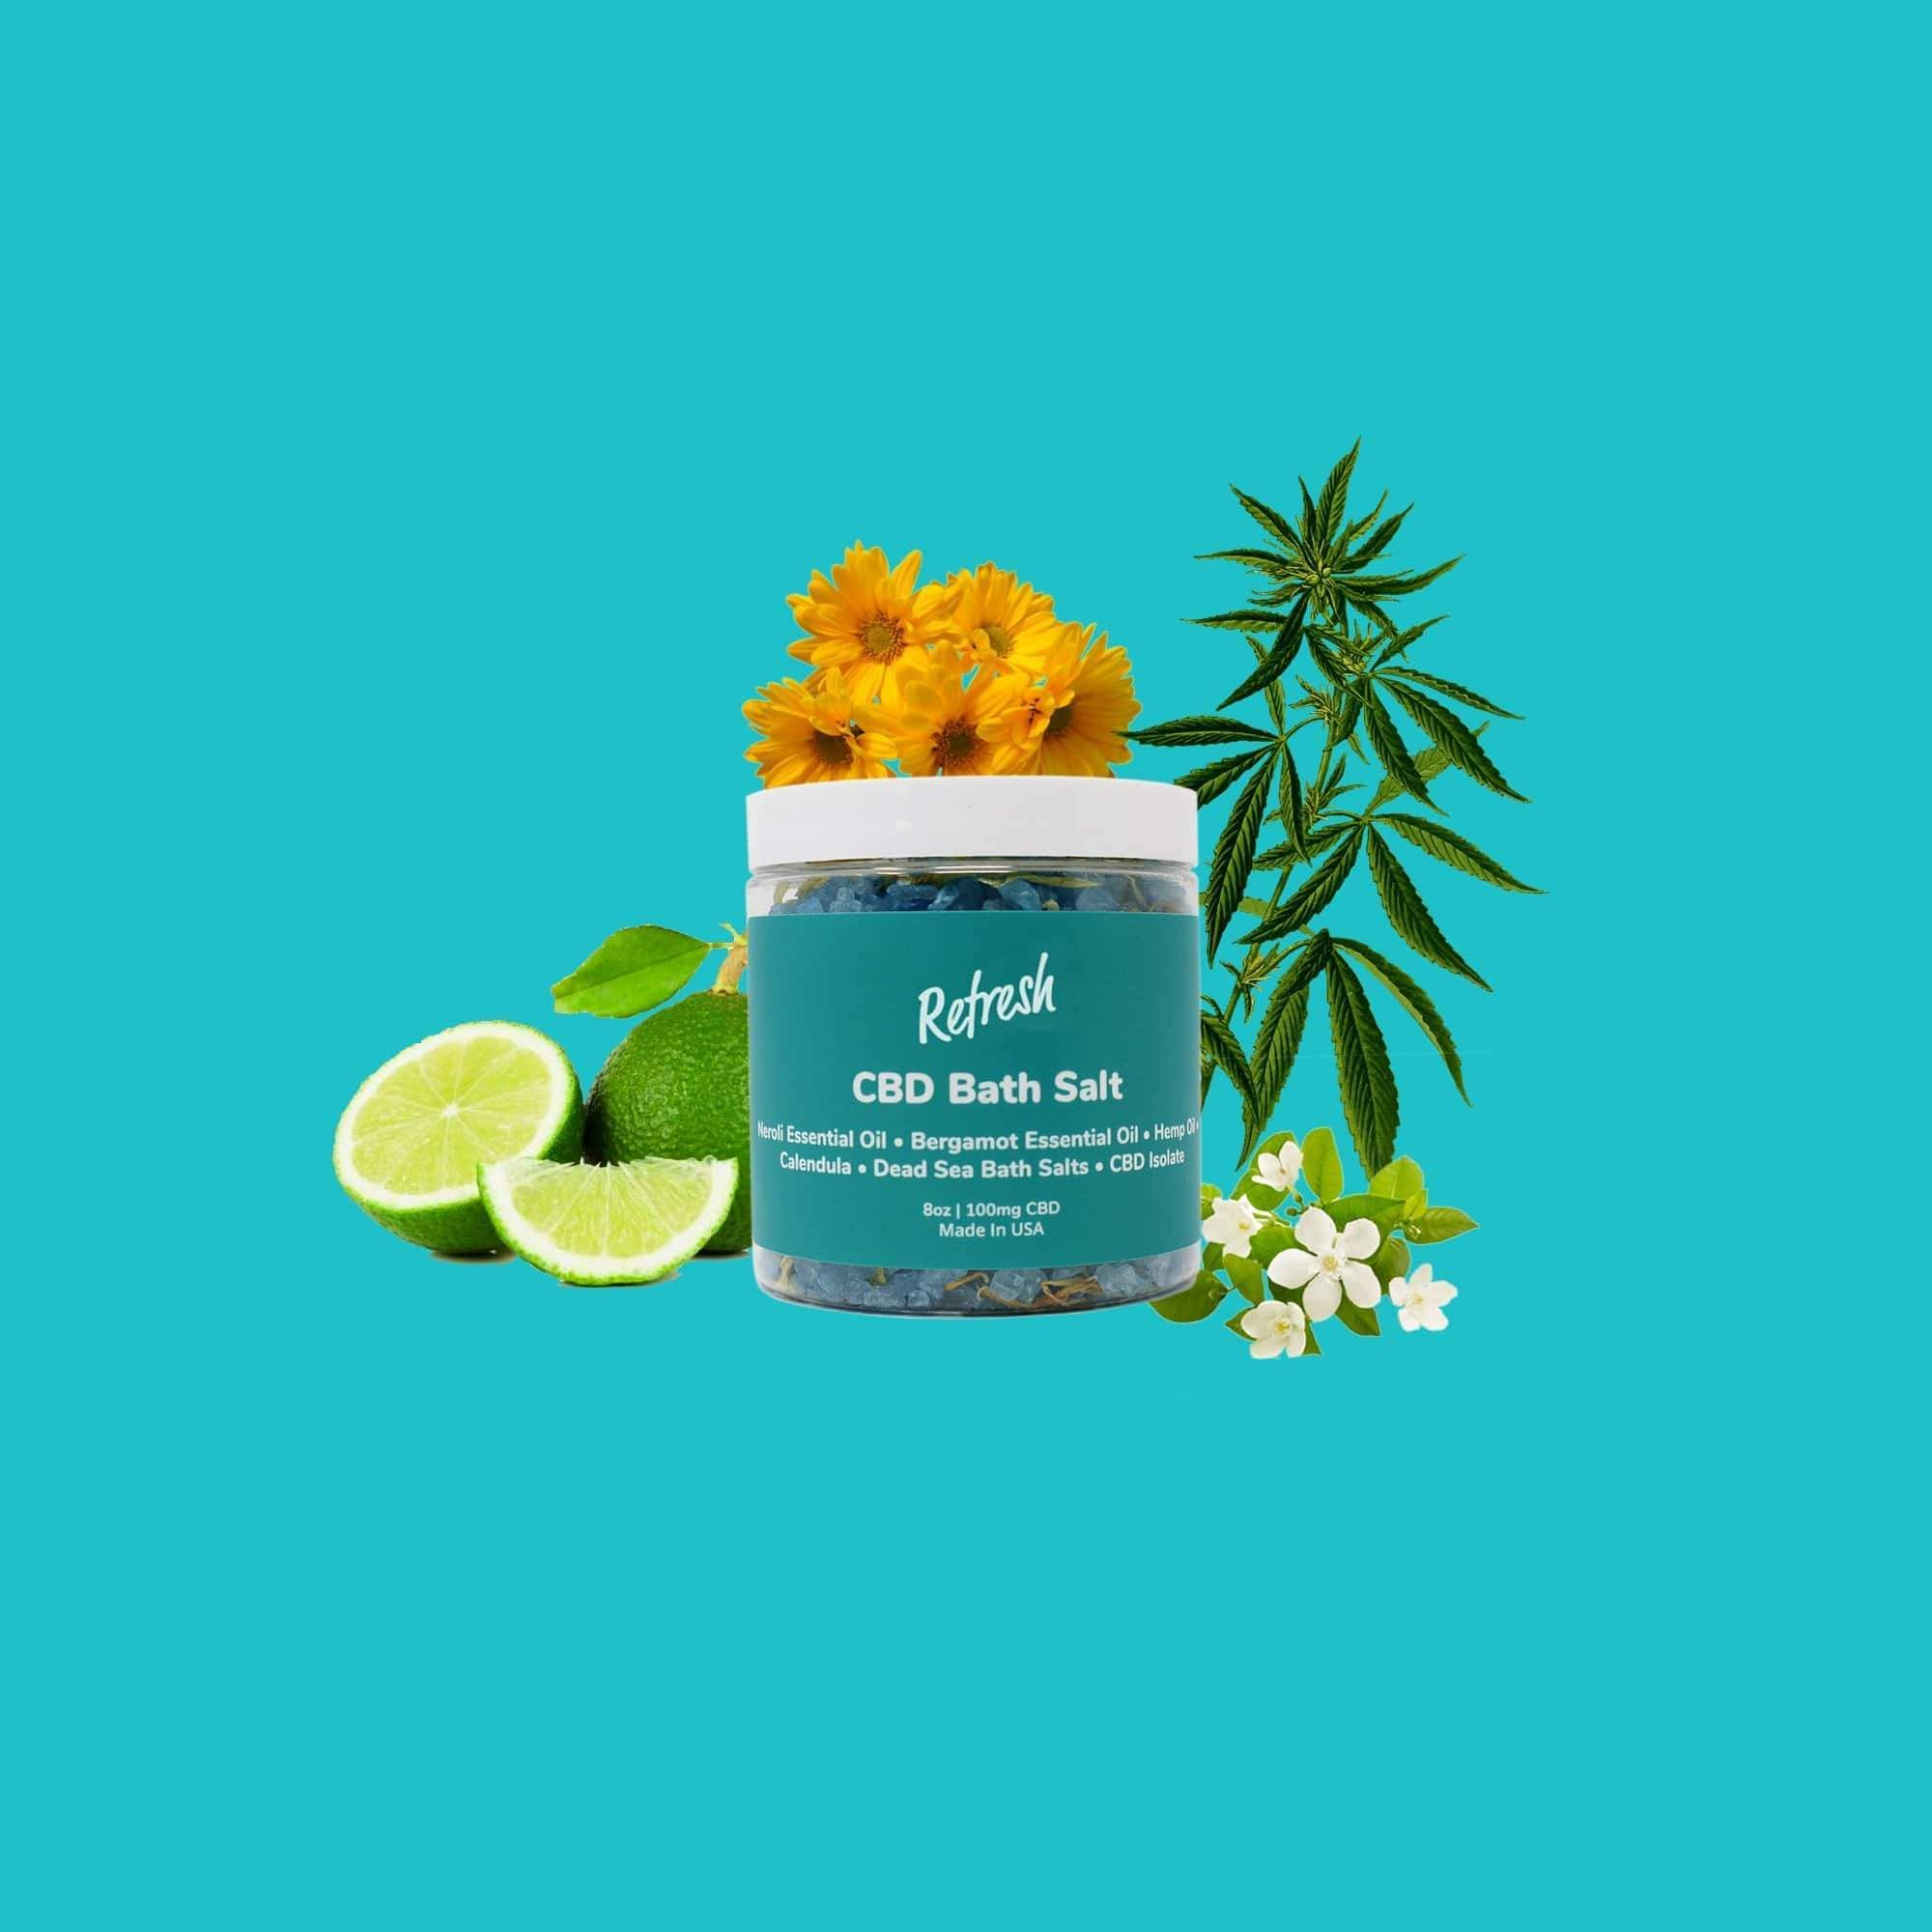 Detox, cleanse, purify, rejuvenate body + soul with premium hemp CBD Dead Sea Salts for wellness self-care routines.  Refresh luxurious CBD bath salts are ideally suited for rejuvenation, detoxification, cleanse and relief. . #cbdbath #bathroutines #selfindulgence #bathwellness #routineandrituals #cbd #dailywellness #wellness #selfcarefirst #refresh #recharge #unwind #refreshcbd #relax #clam #womenshealth #menshealth #relaxingbath #bubblebath #dailycbd #cbdbath  #bathsoak #healthwellness